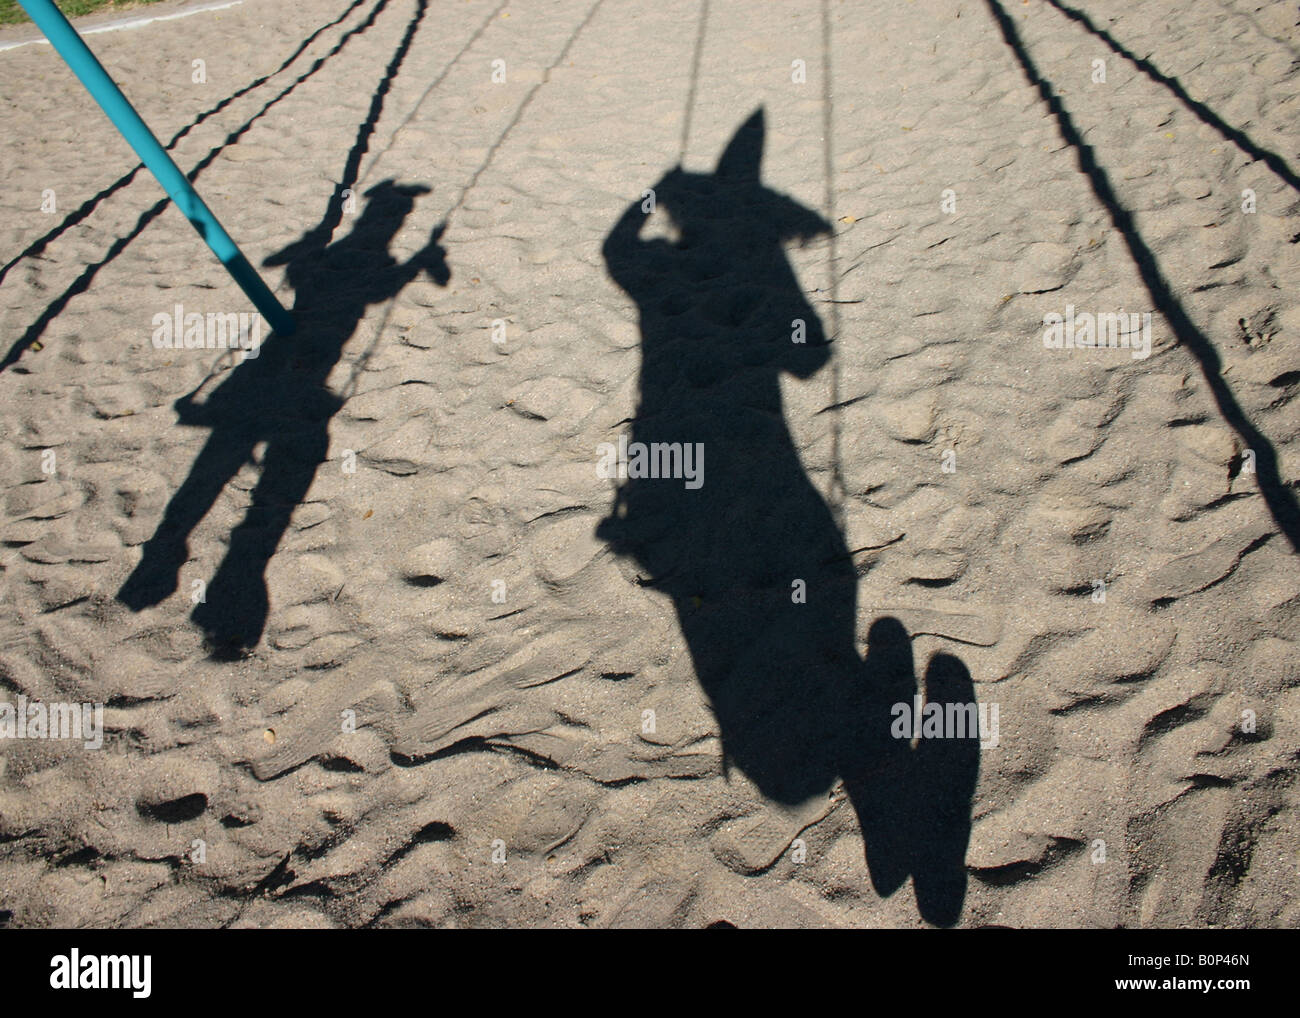 shadow of parent and child on swing wearing Halloween costumes - Stock Image